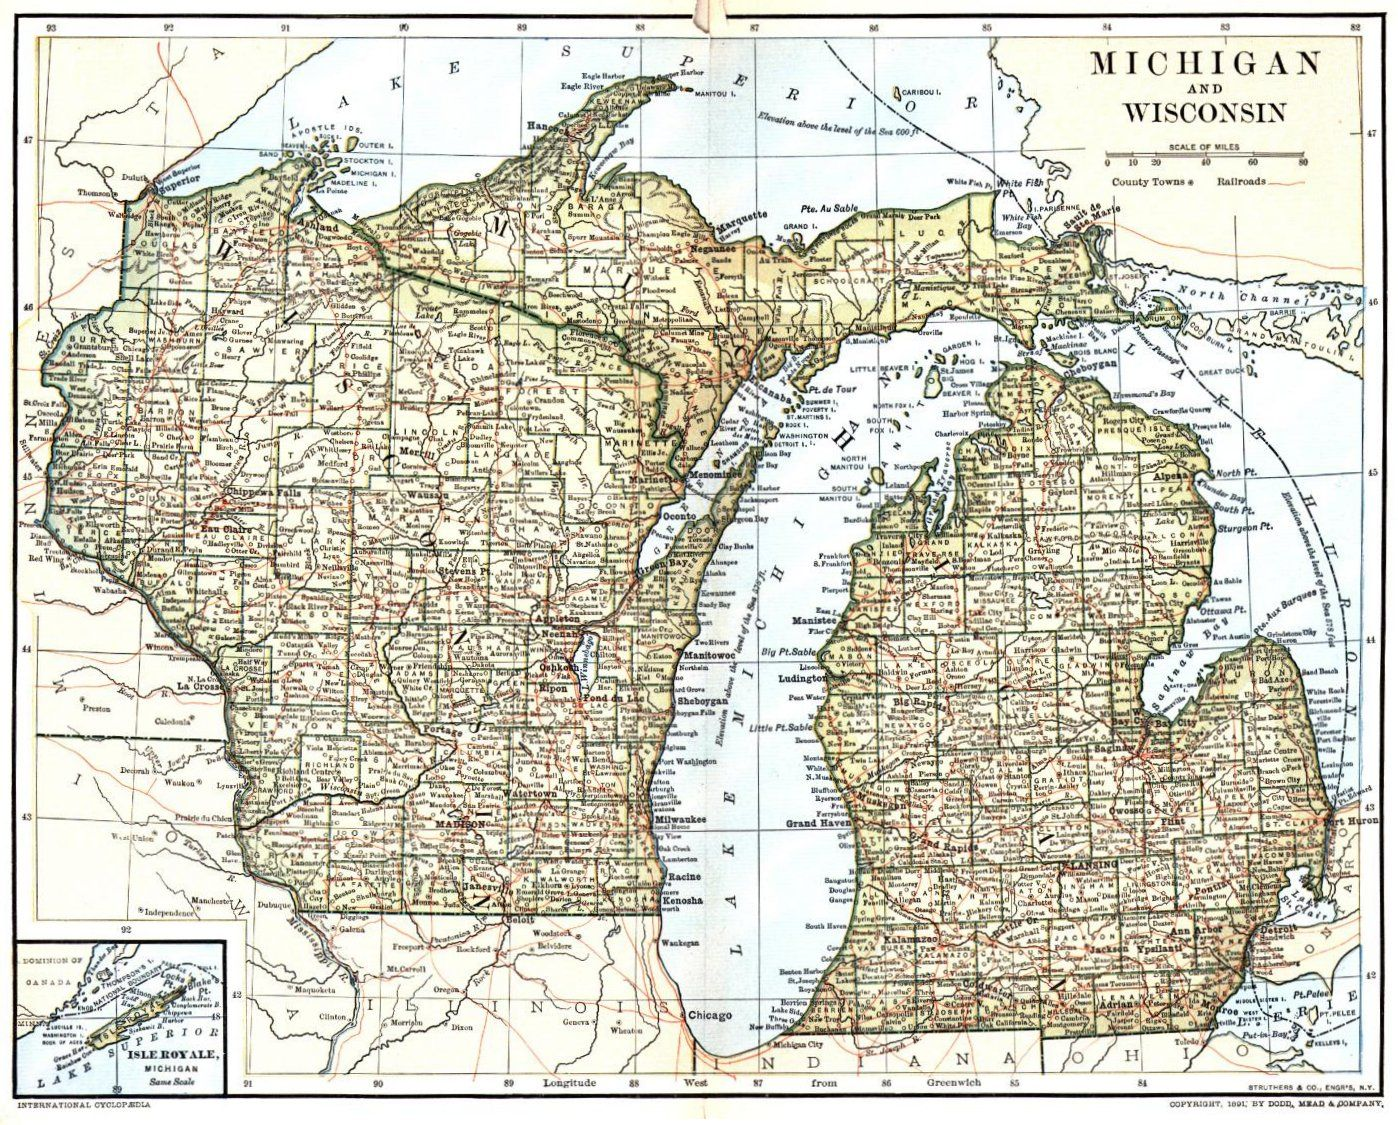 1891 map of Michigan and Wisconsin from the Wisconsin Digital Map